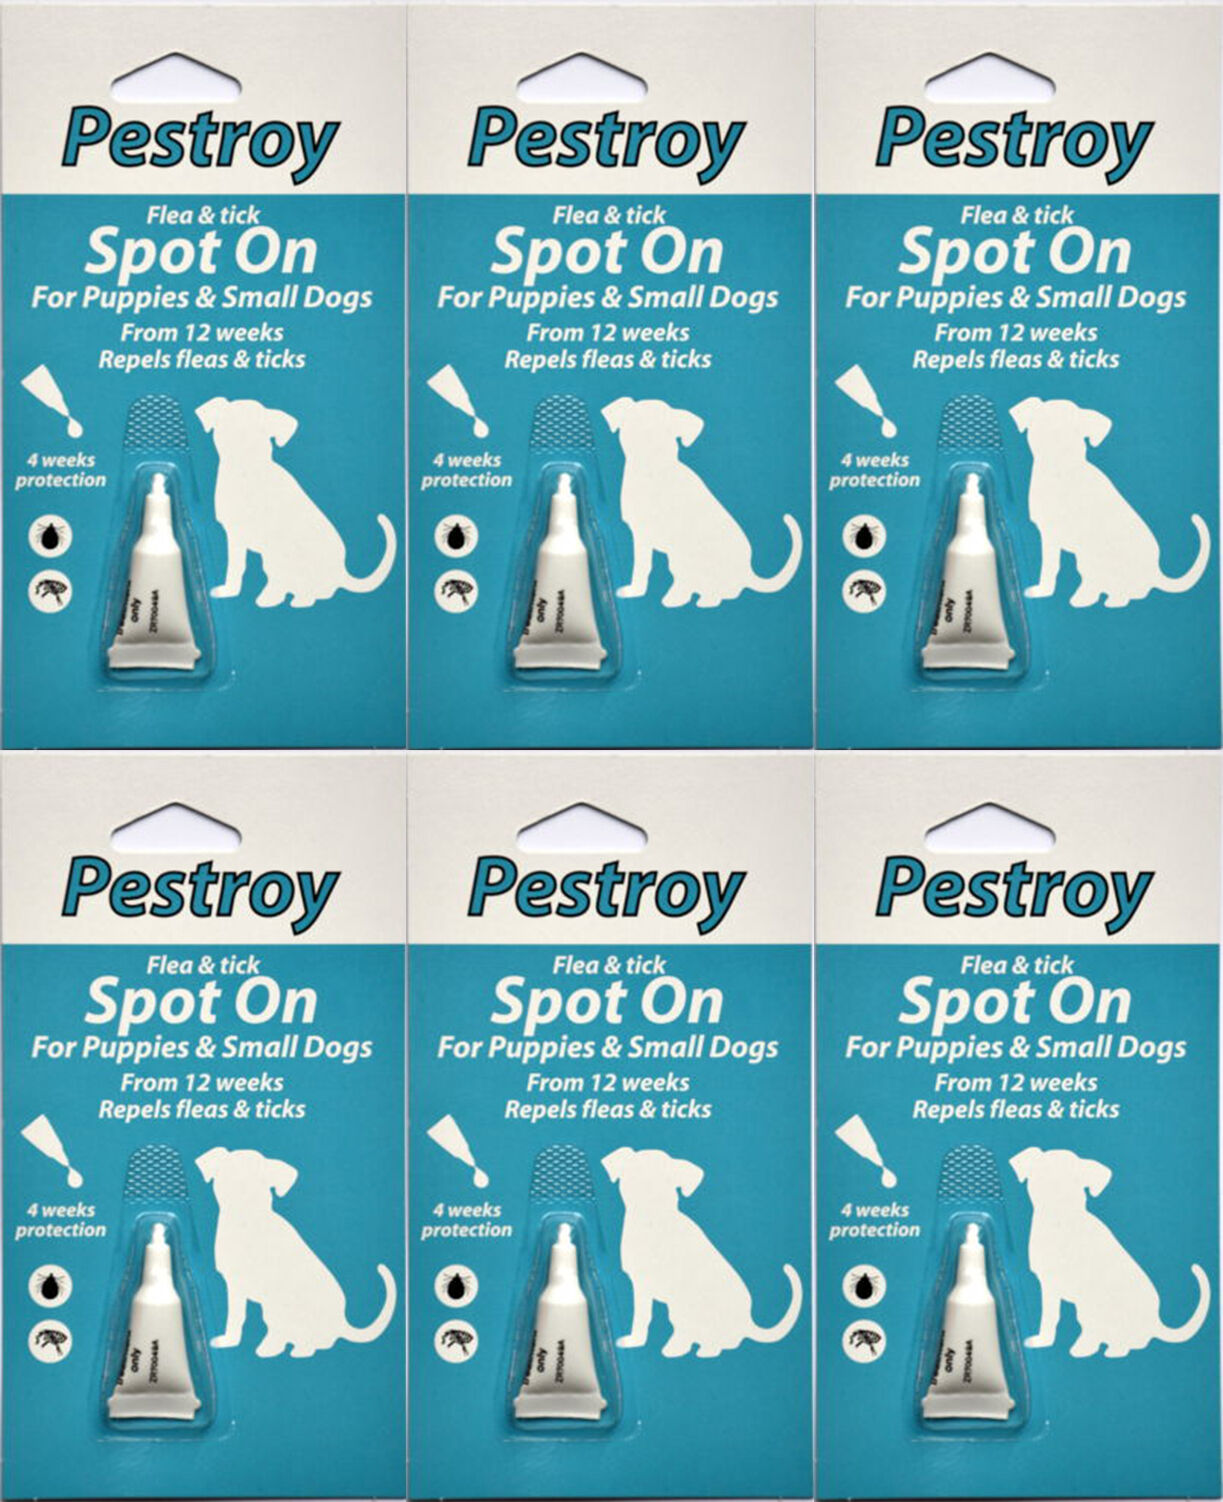 12 Months Pestrroy Flea & Tic treatment Puppies & Small Dogs For The Price of 9!